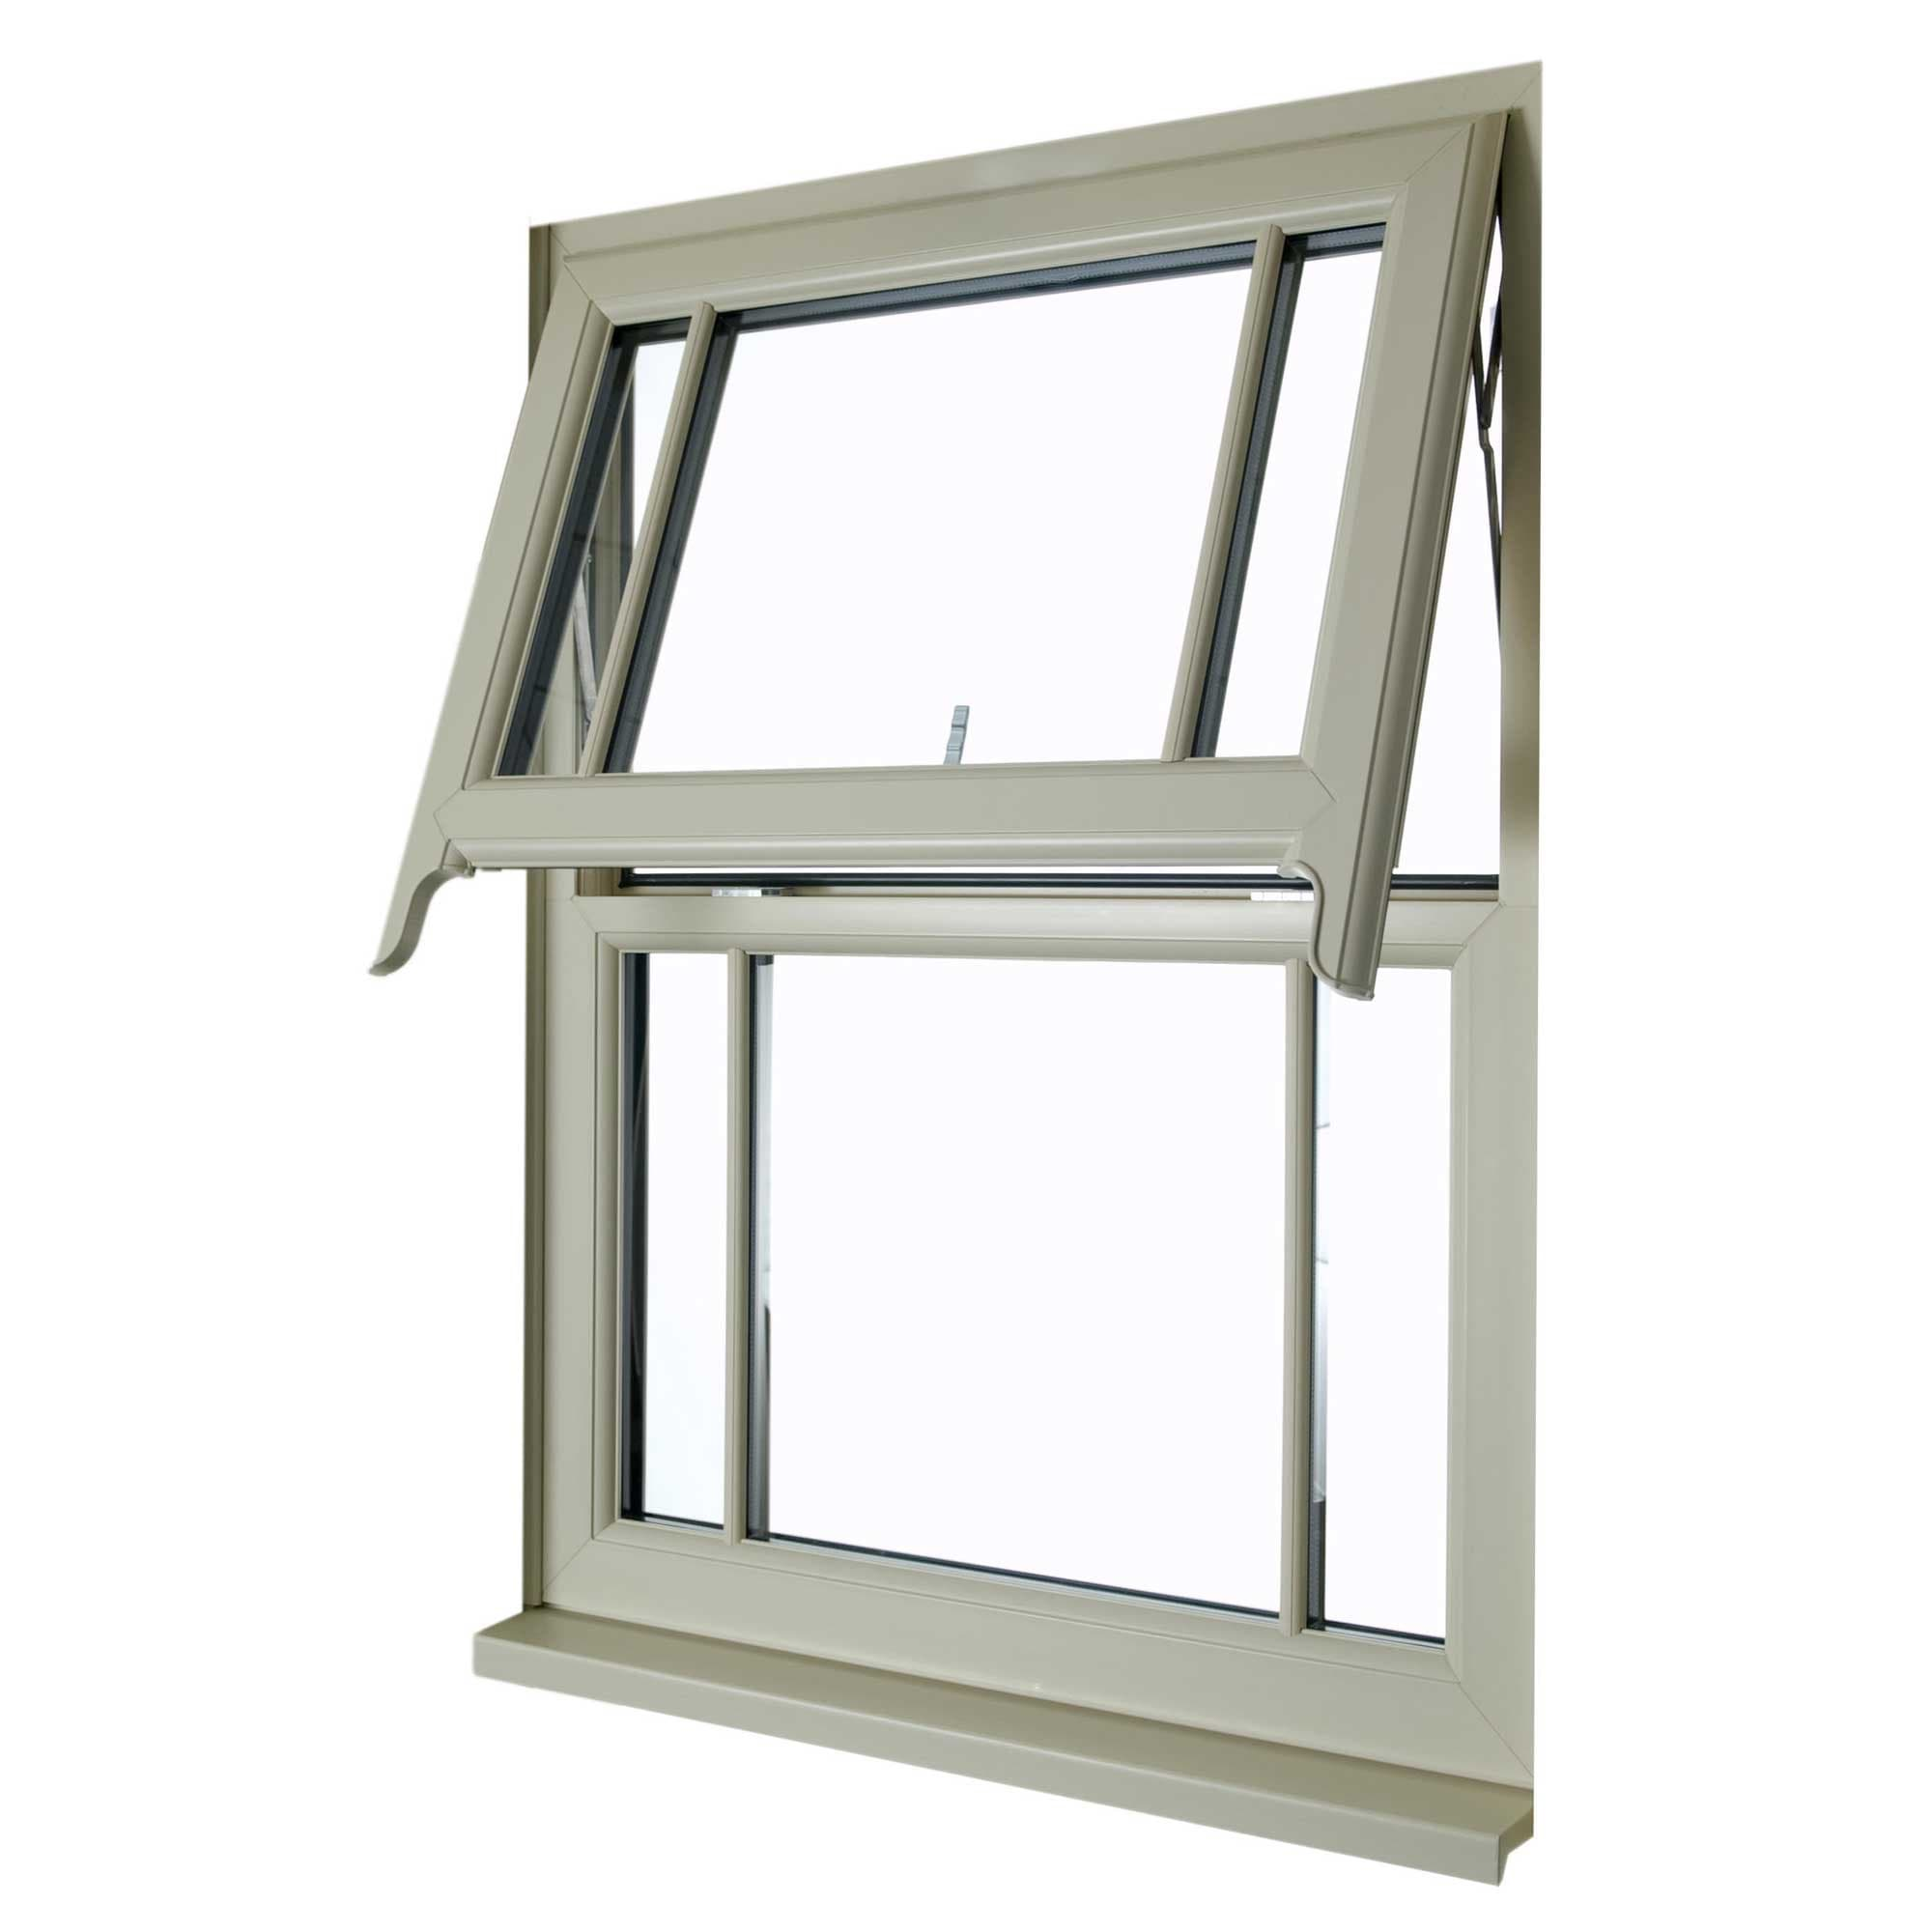 Sash Horn Windows Bedford